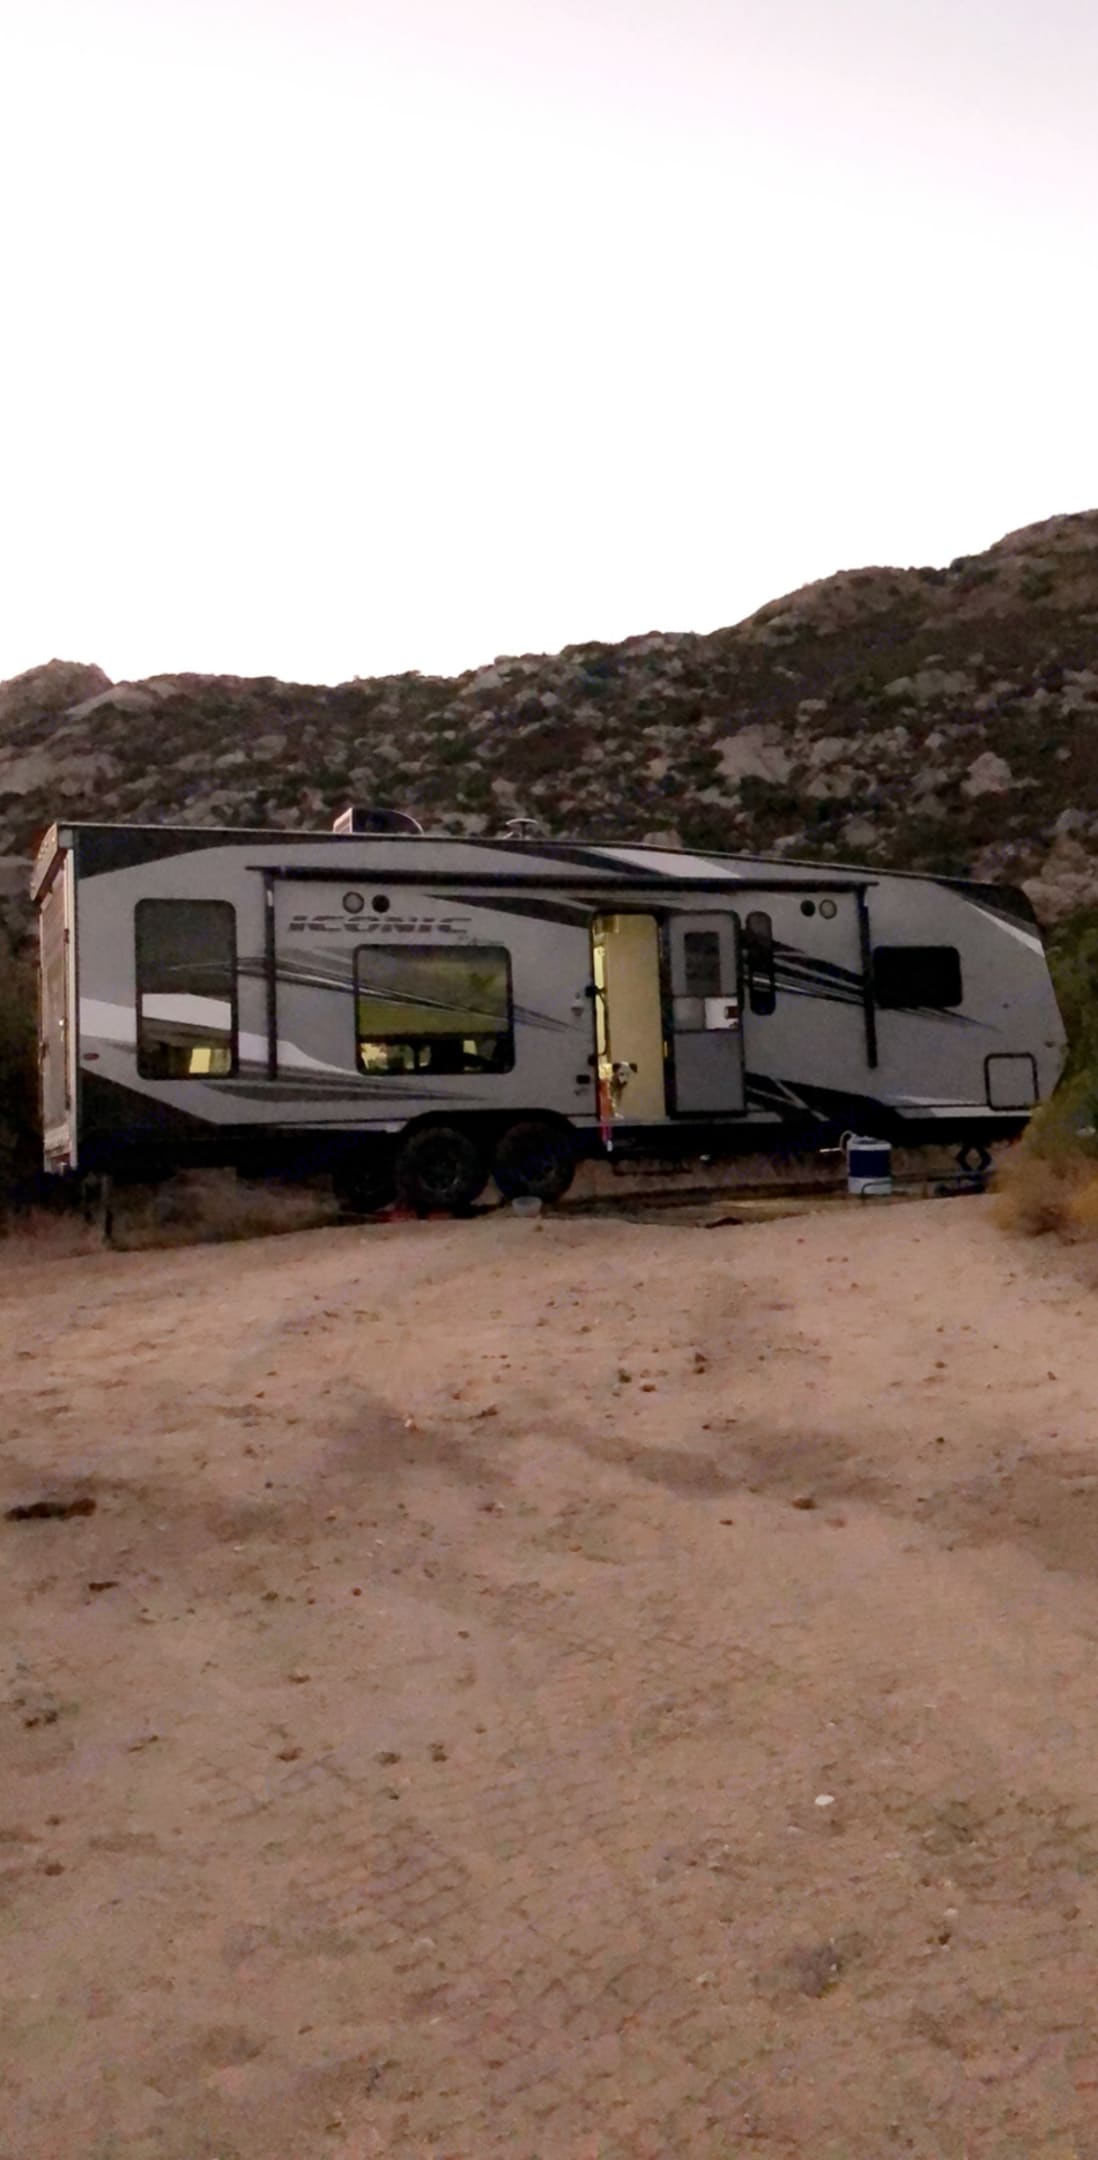 Dry camping at Mt. Laguna. Eclipse Recreational Vehicles Iconic 2020